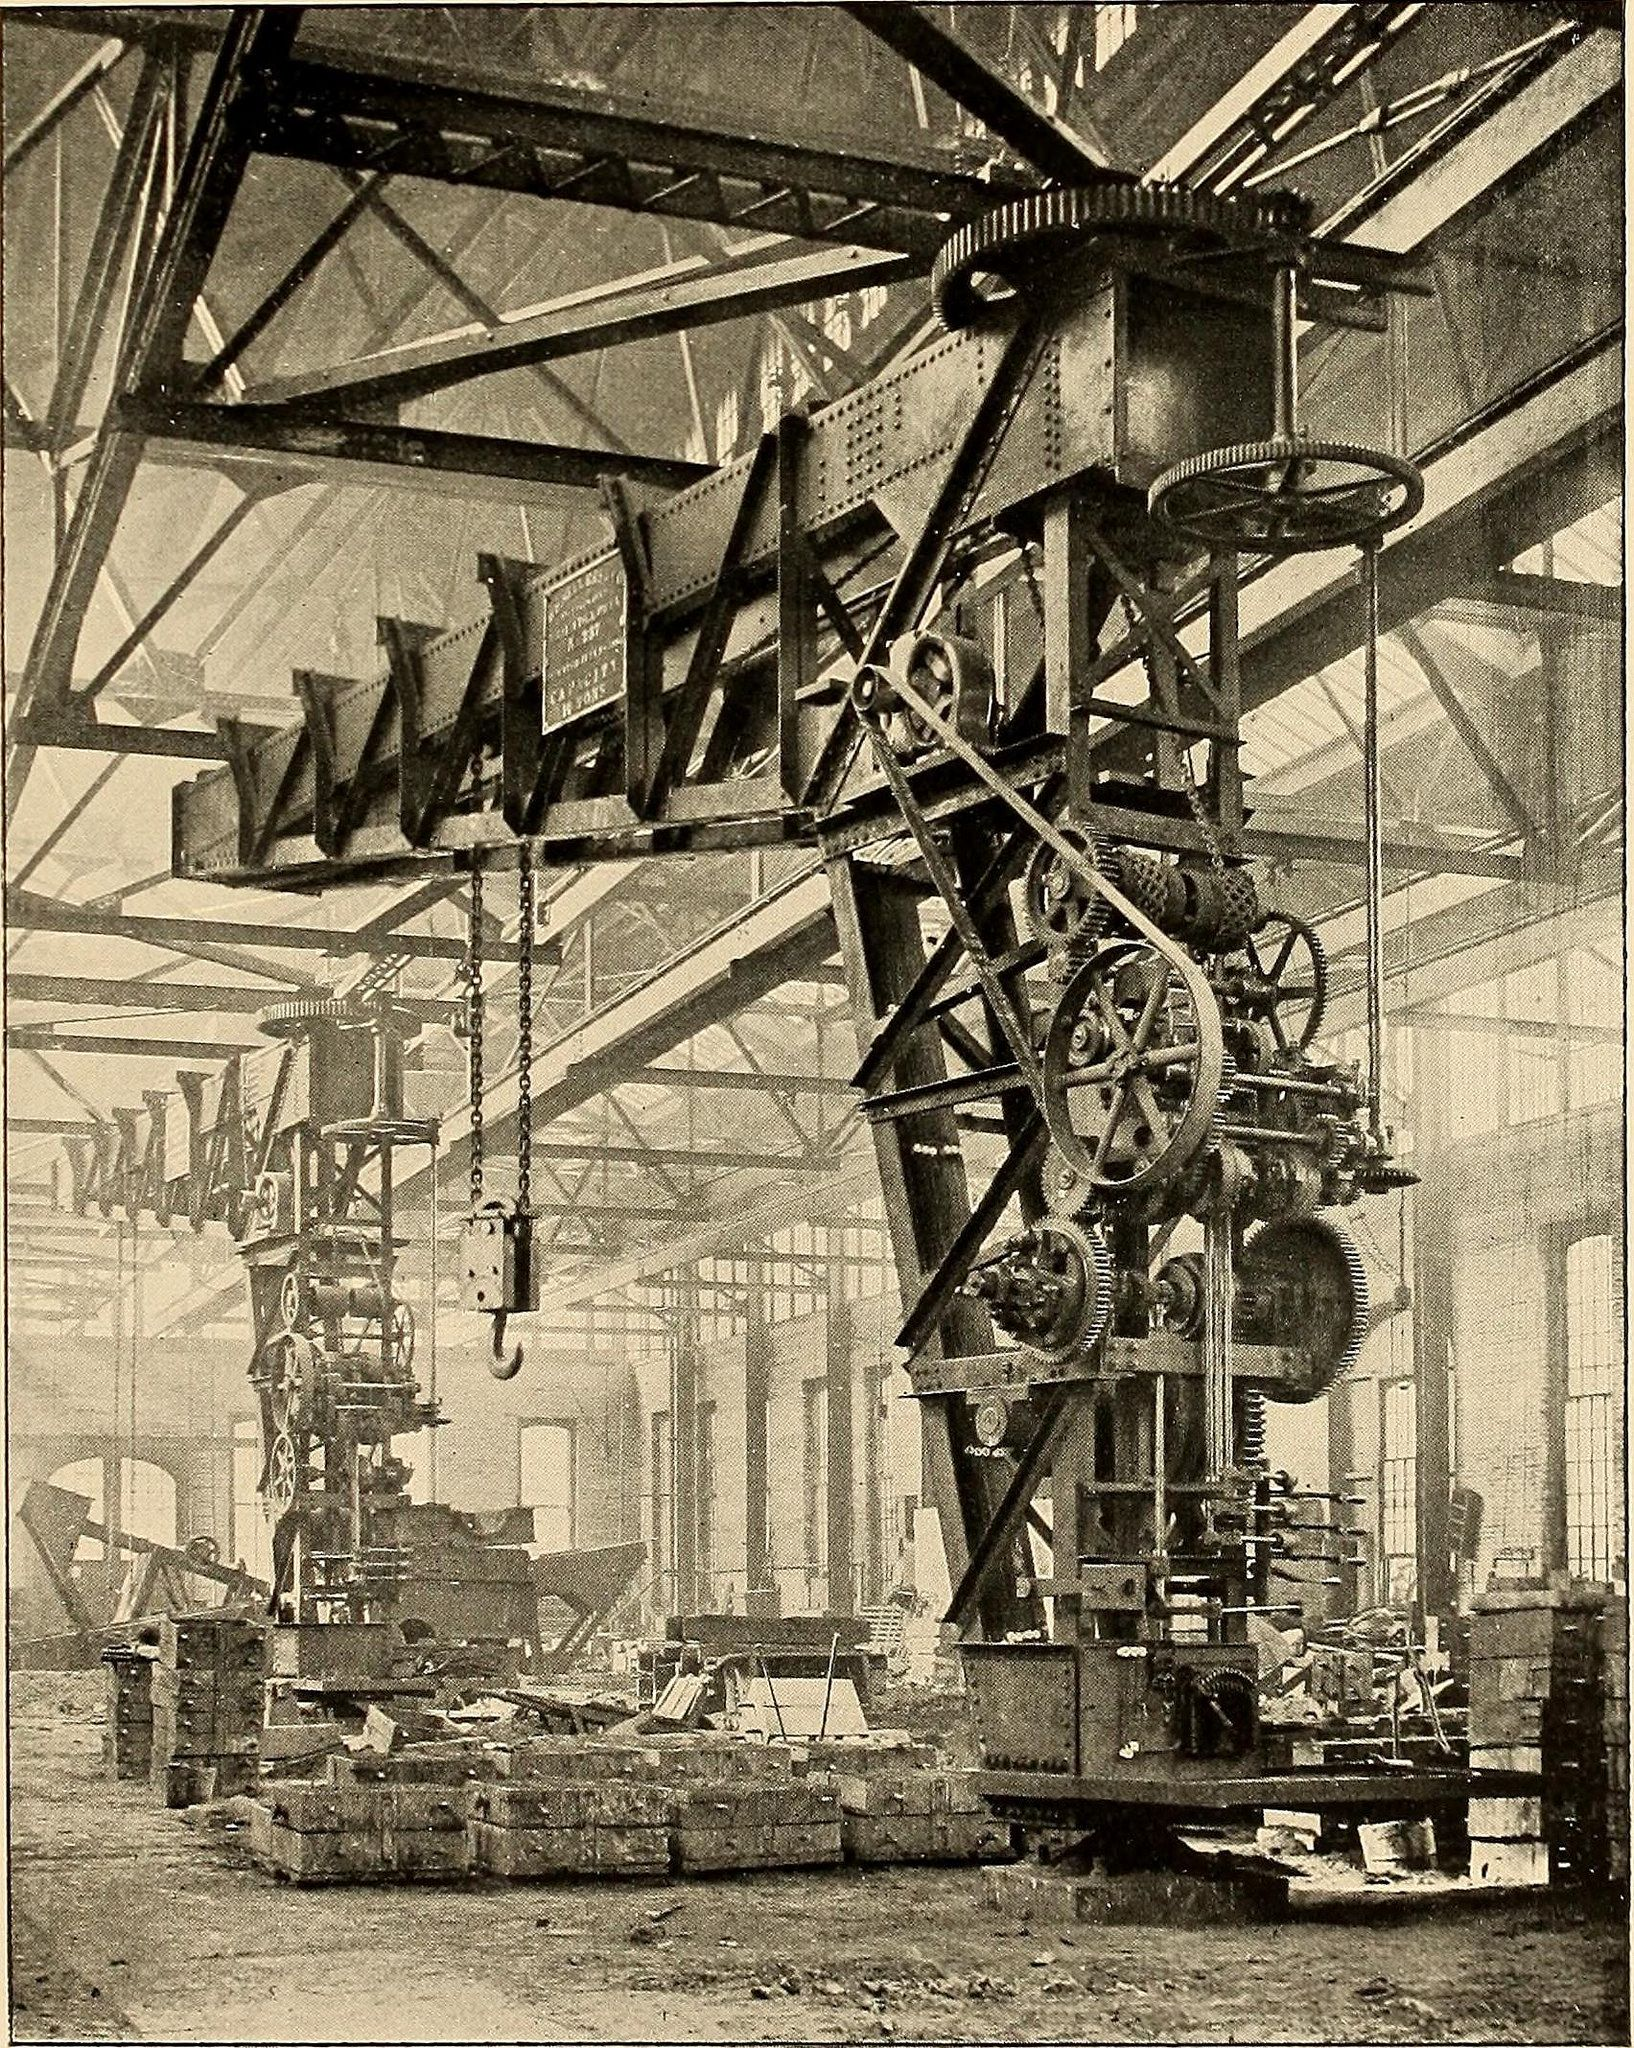 Identifier: illustratedcatal00sell Title: Illustrated catalogue and general description of improved machine tools for working metal Year: 1899 (1890s) Authors:  Sellers, William, & co. [from old catalog] Subjects:  Machine-tools Machinery Publisher:  Philadephia, Levytype company Contributing Library:  The Library of Congress Digitizing Sponsor:  The Library of Congress   View Book Page: Book Viewer About This Book: Catalog Entry View All Images: All Images From Book  Click here to view…